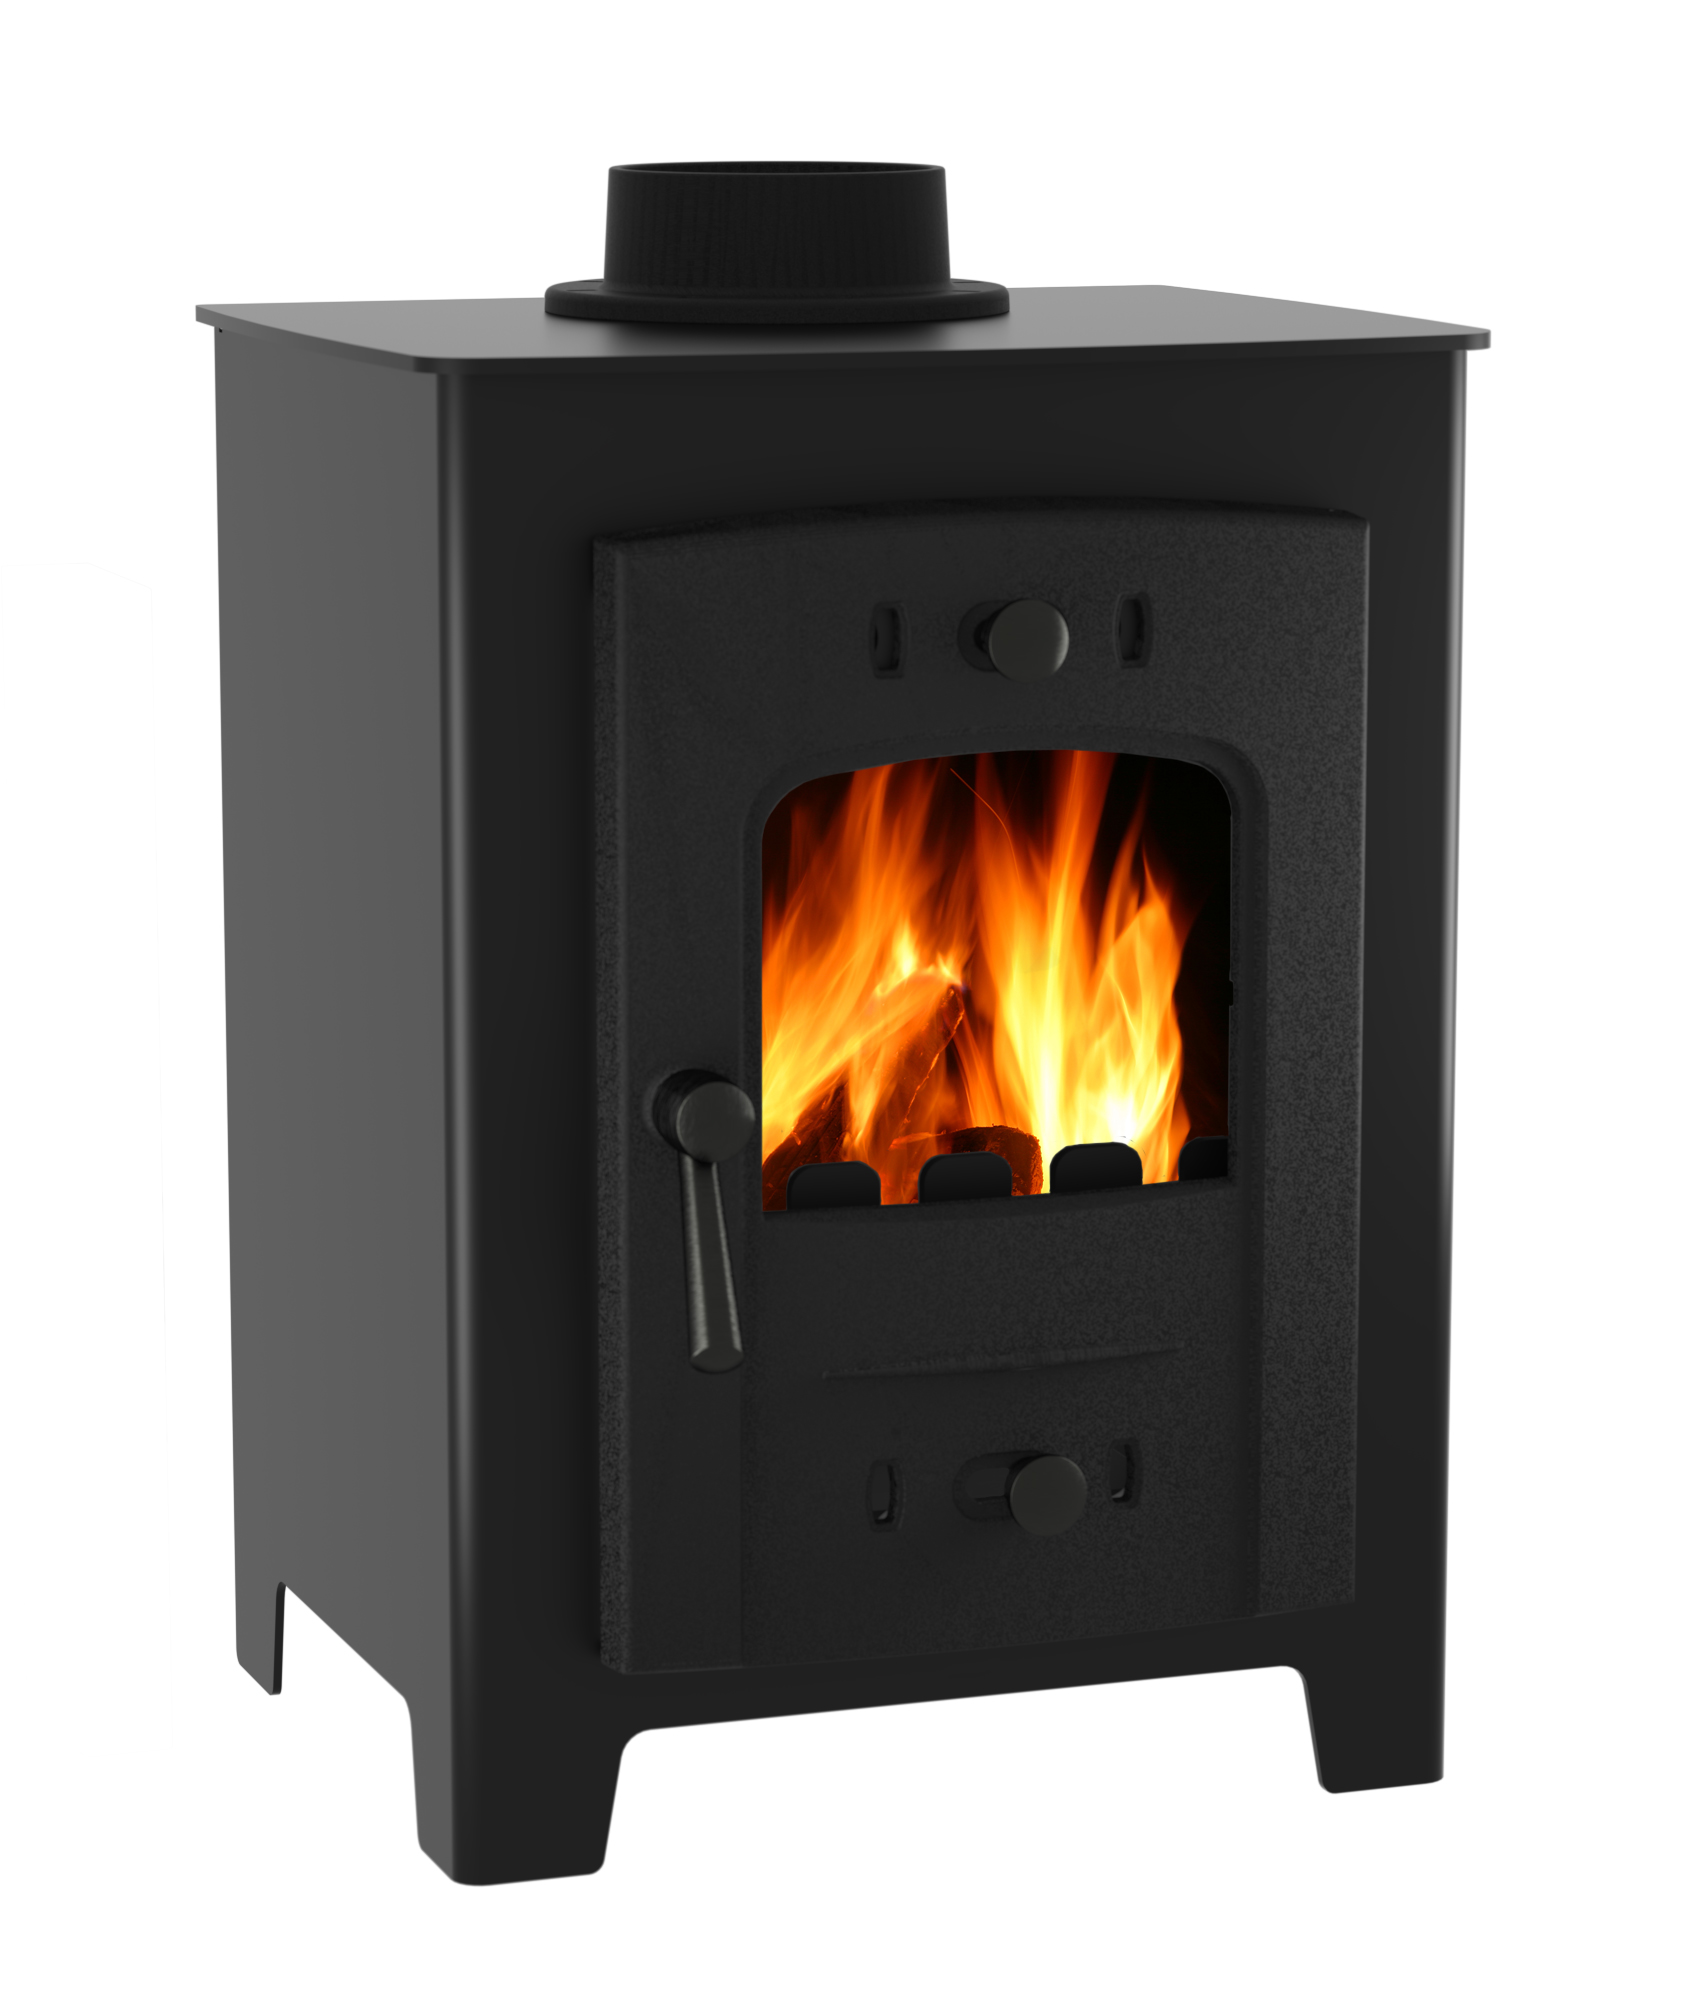 Arada stoves and spares online dating 3